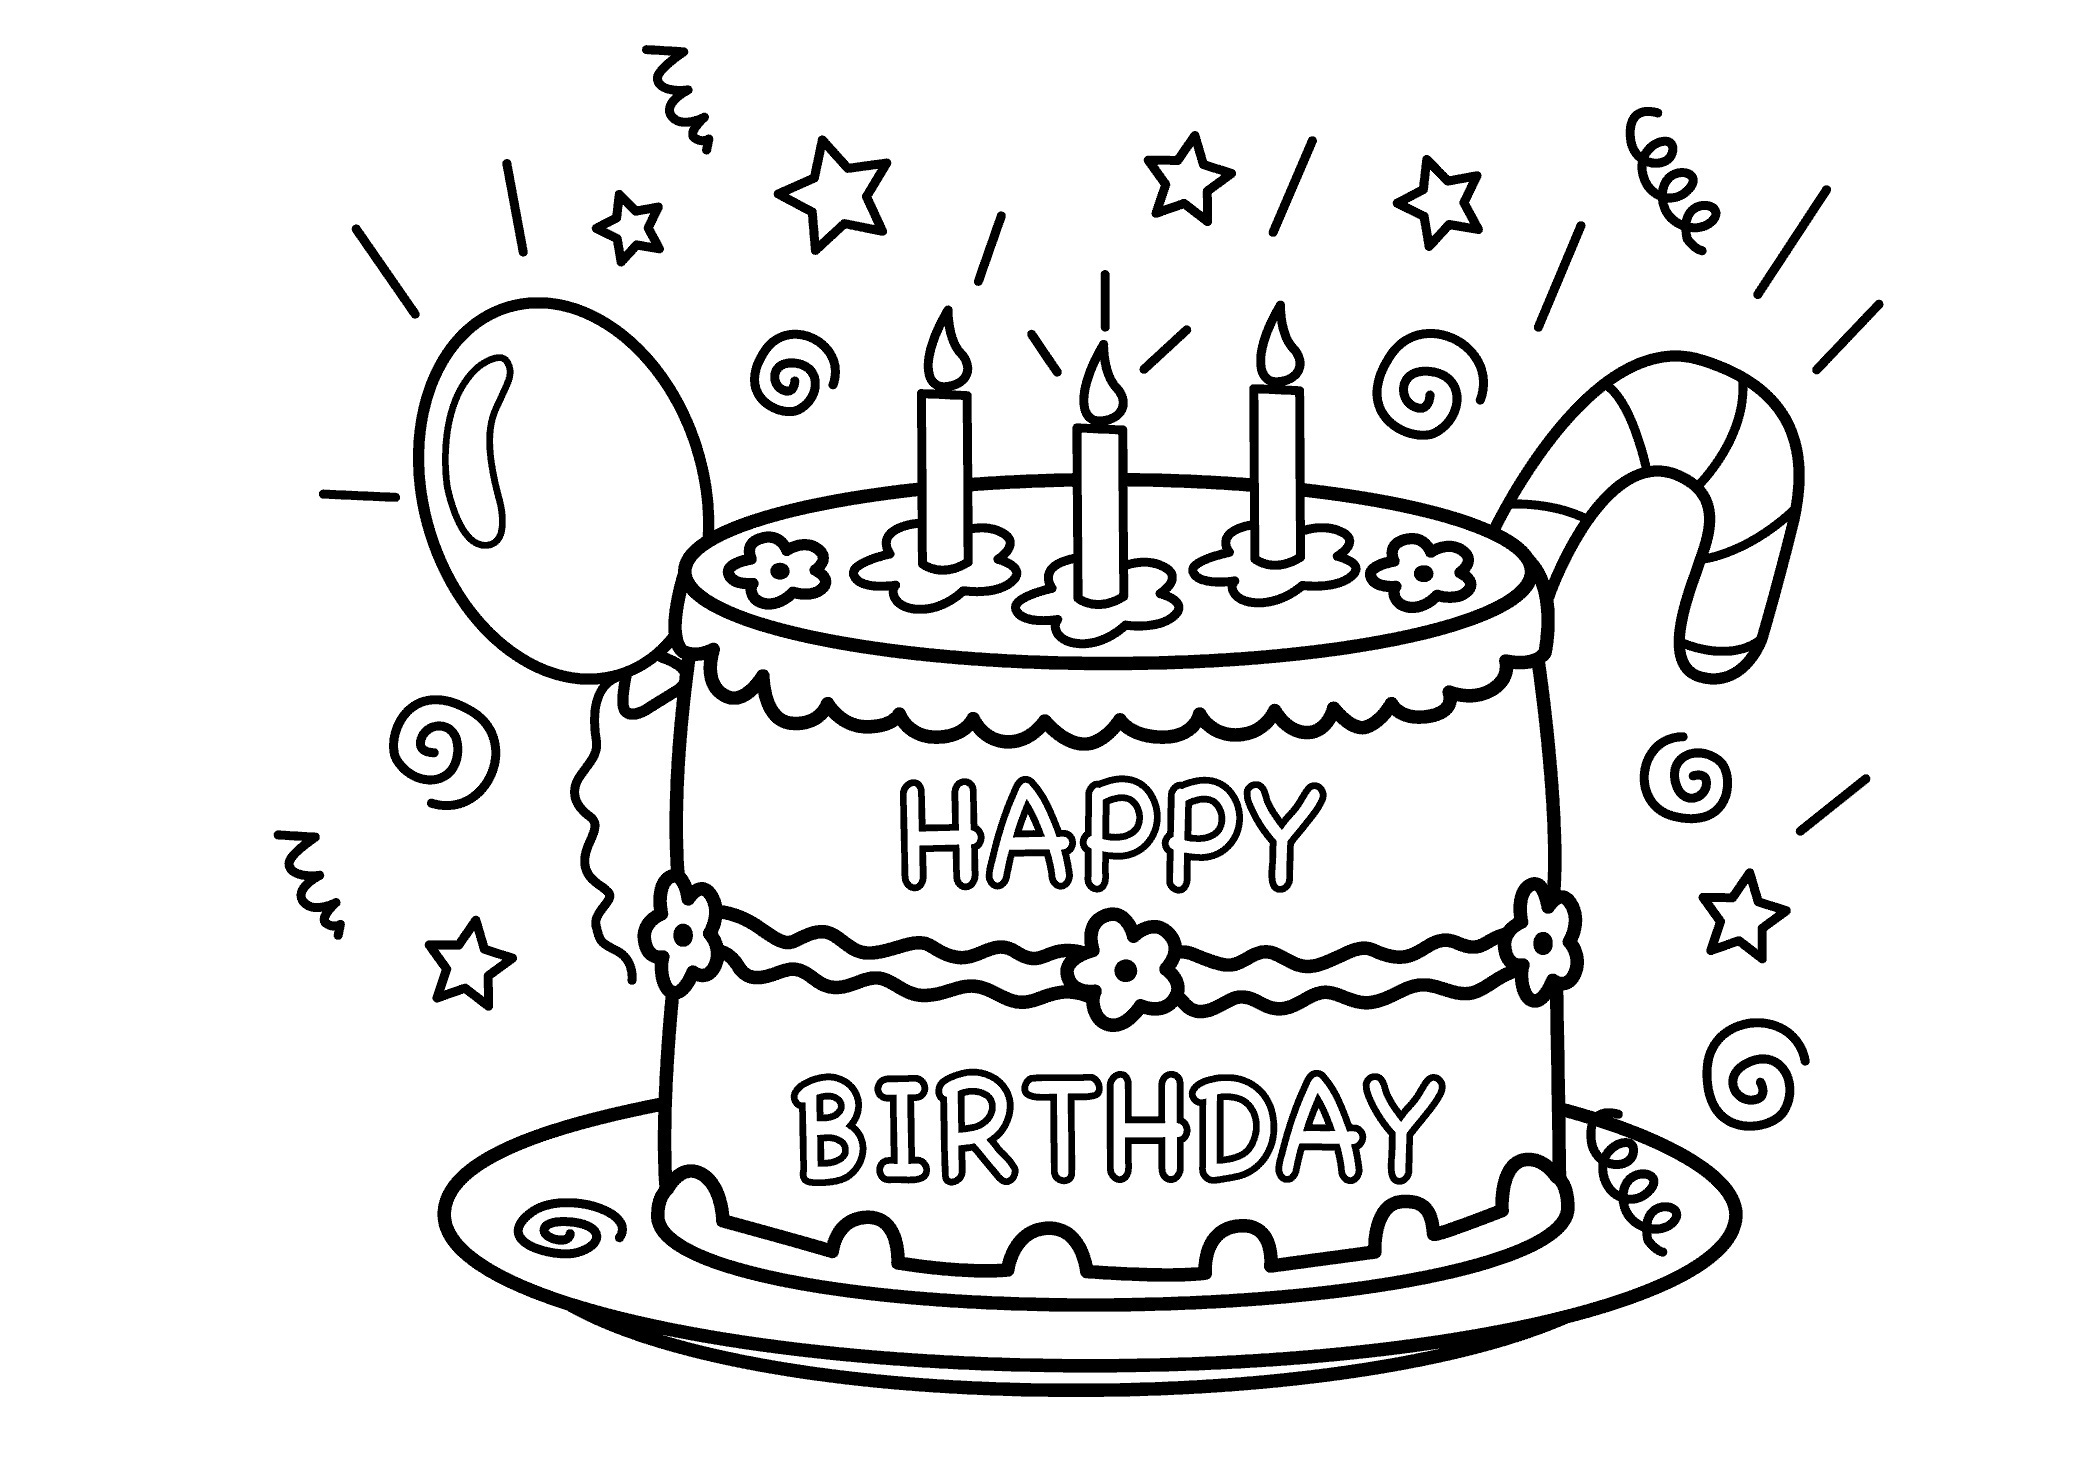 birthday cake pictures to color free free printable birthday cake coloring pages for kids birthday color free pictures to cake